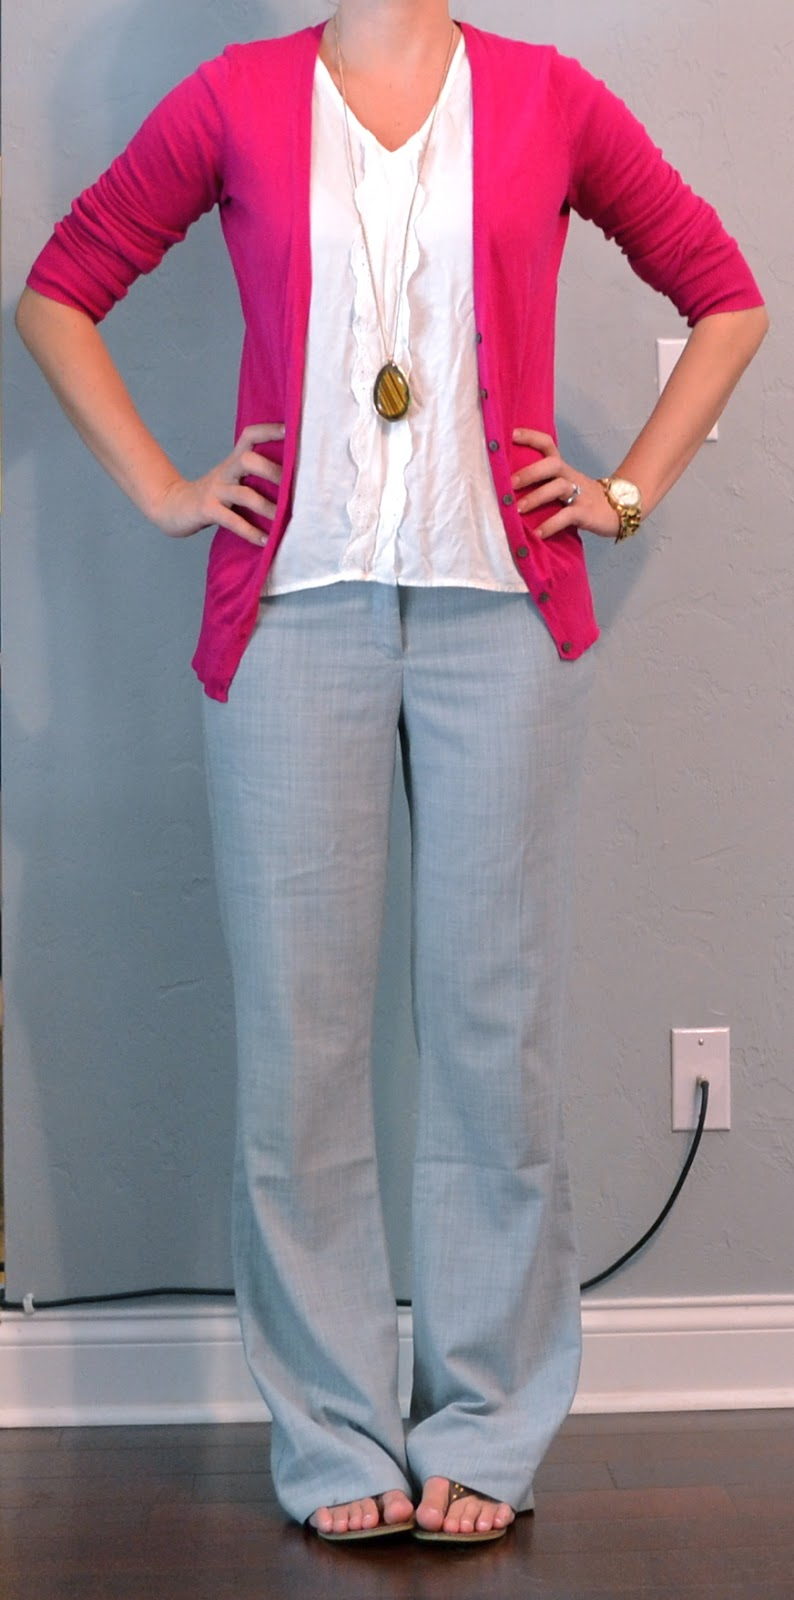 Outfit Posts: Pink Cardigan, Grey Pants, White Top, Flip Flops